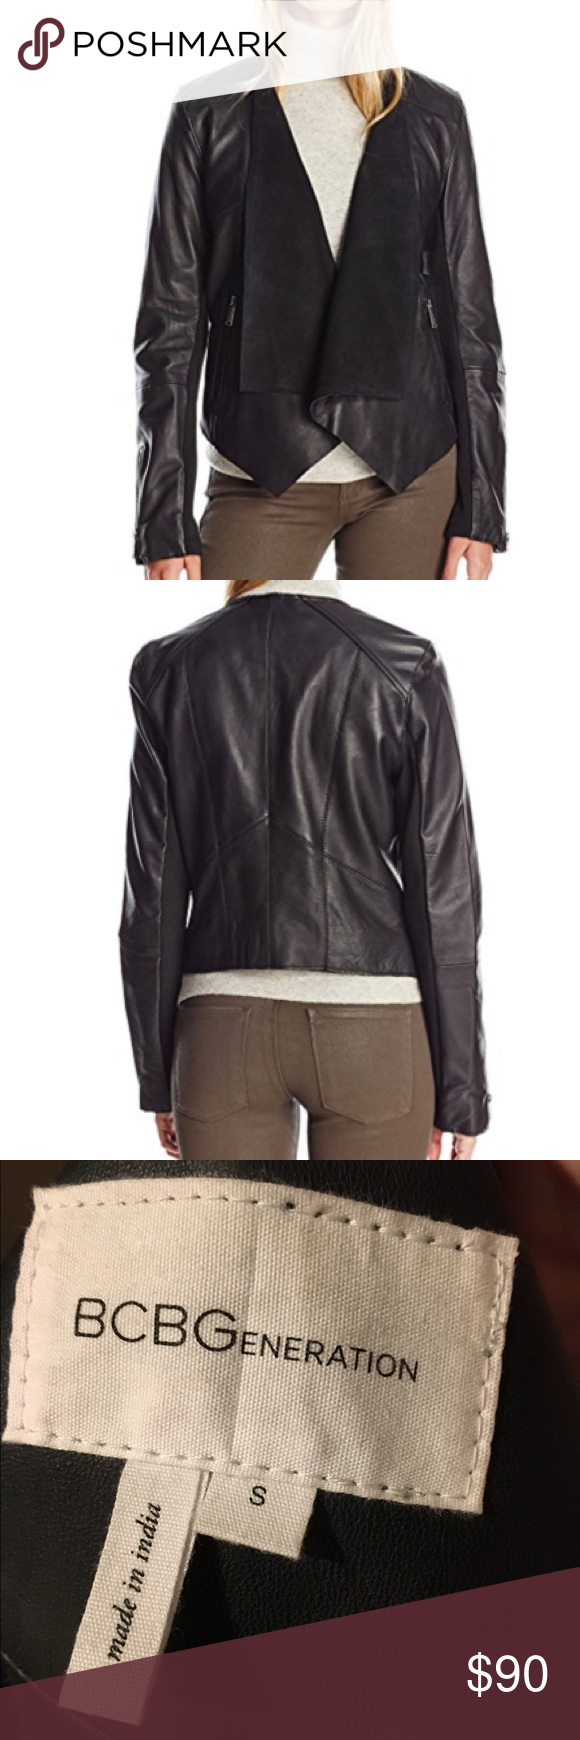 Bcbgeneration black leather jacket size S Description Missy open front drape leather jacket in black with zipper by the sleeve that open Features & details Shell: 100% Leather; Lining1: 100% Cotton Imported Dry Clean Only BCBGeneration Jackets & Coats